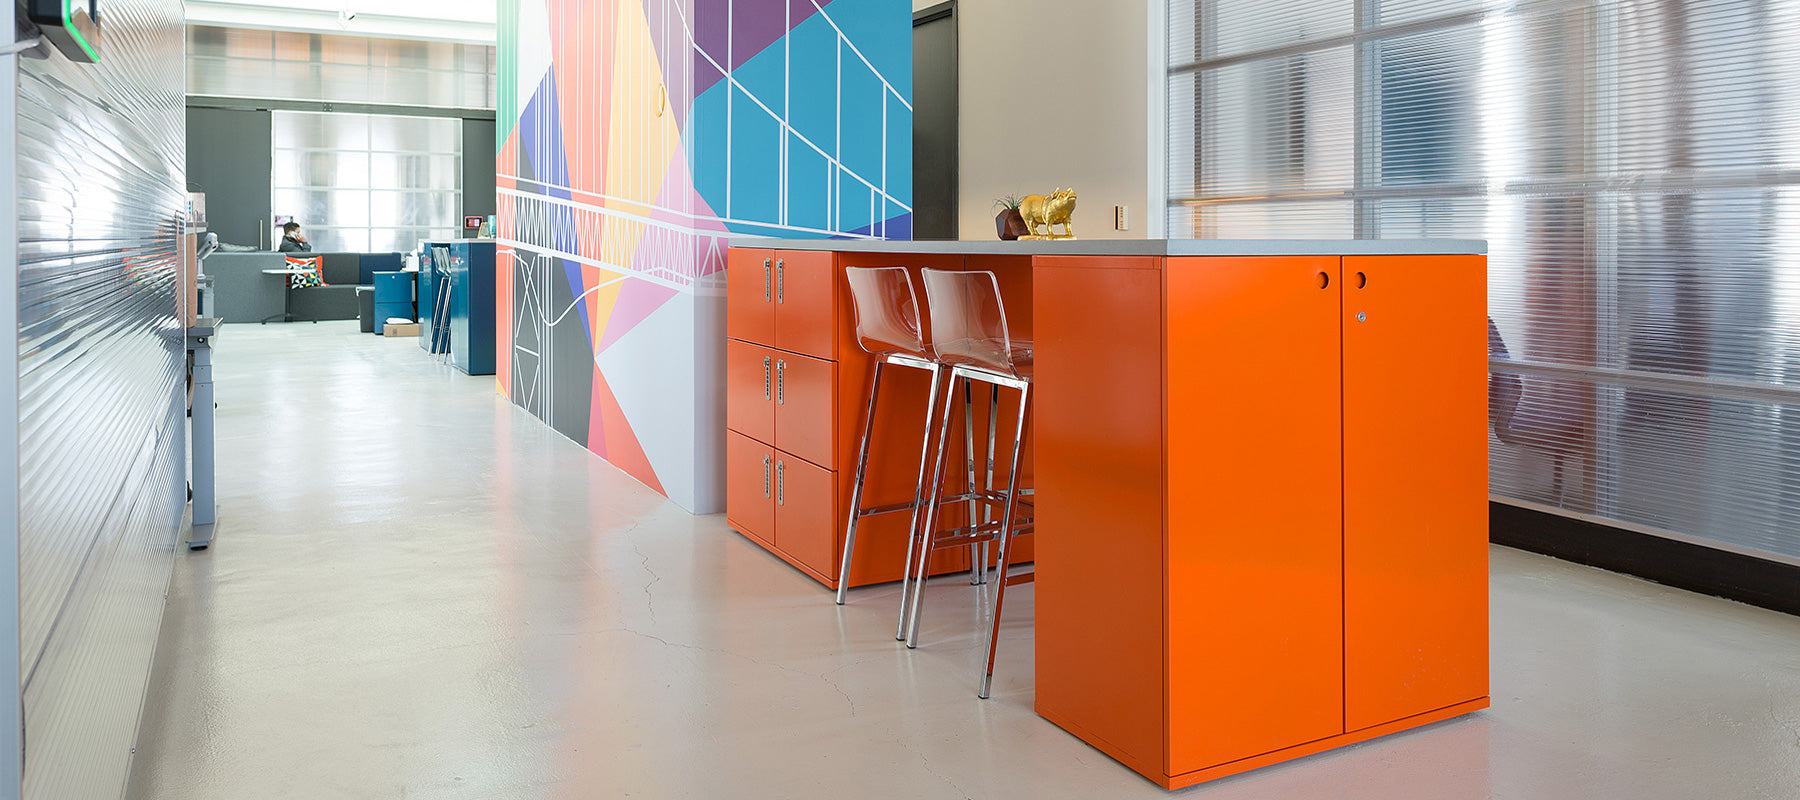 Heartwork Building Block endcaps and lockers in warm orange arranged as workbar in office setting